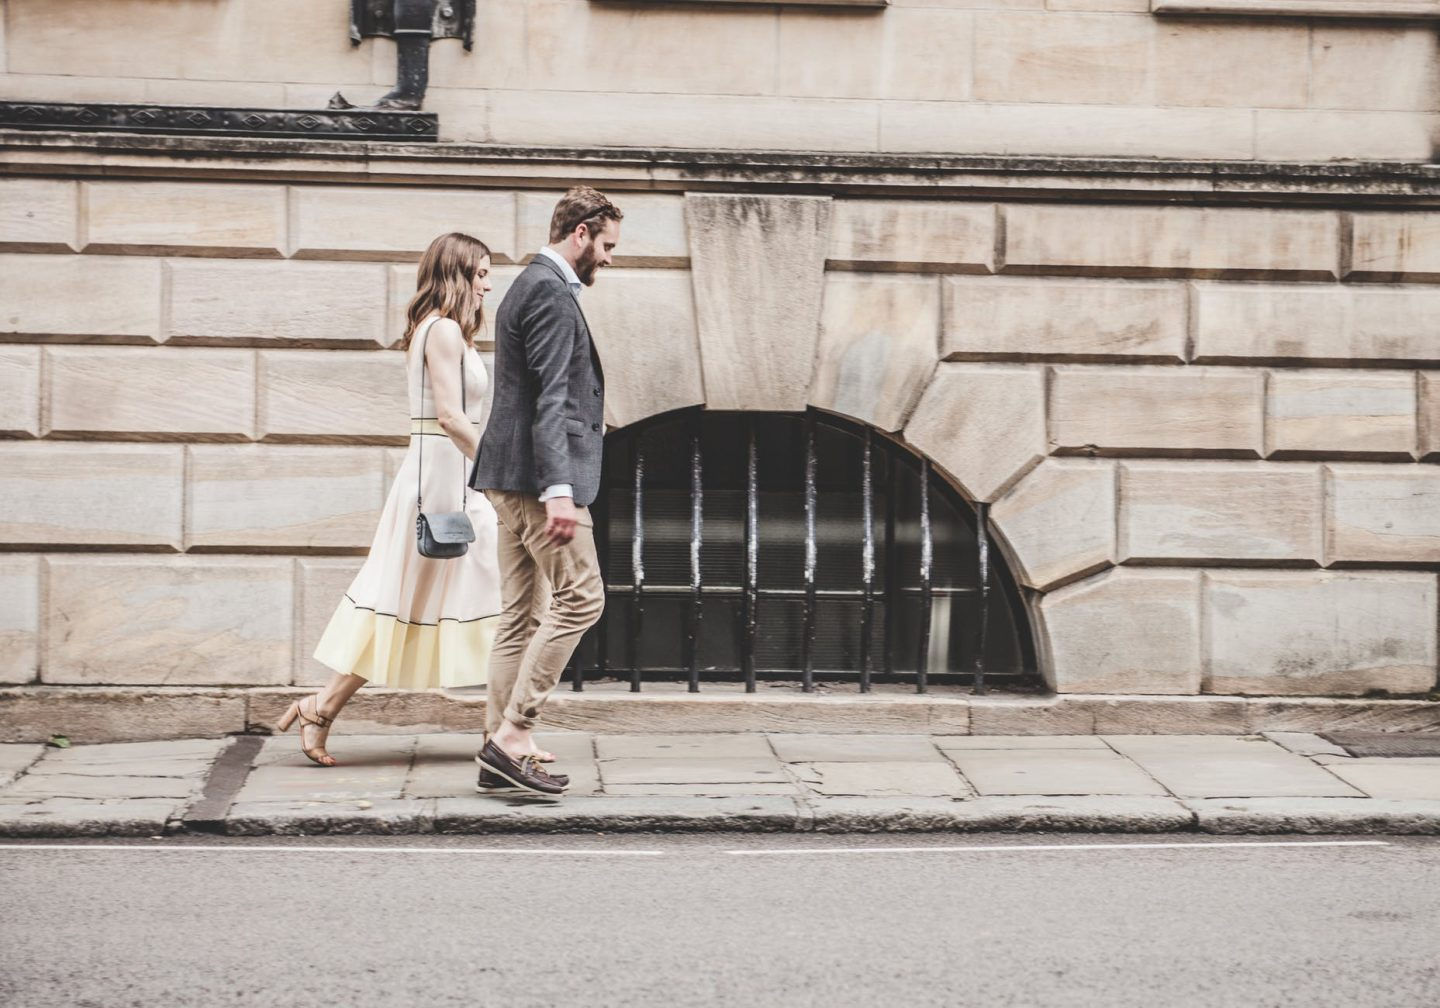 3 First Date Ideas to Walk and Talk and Get to Know Your Date